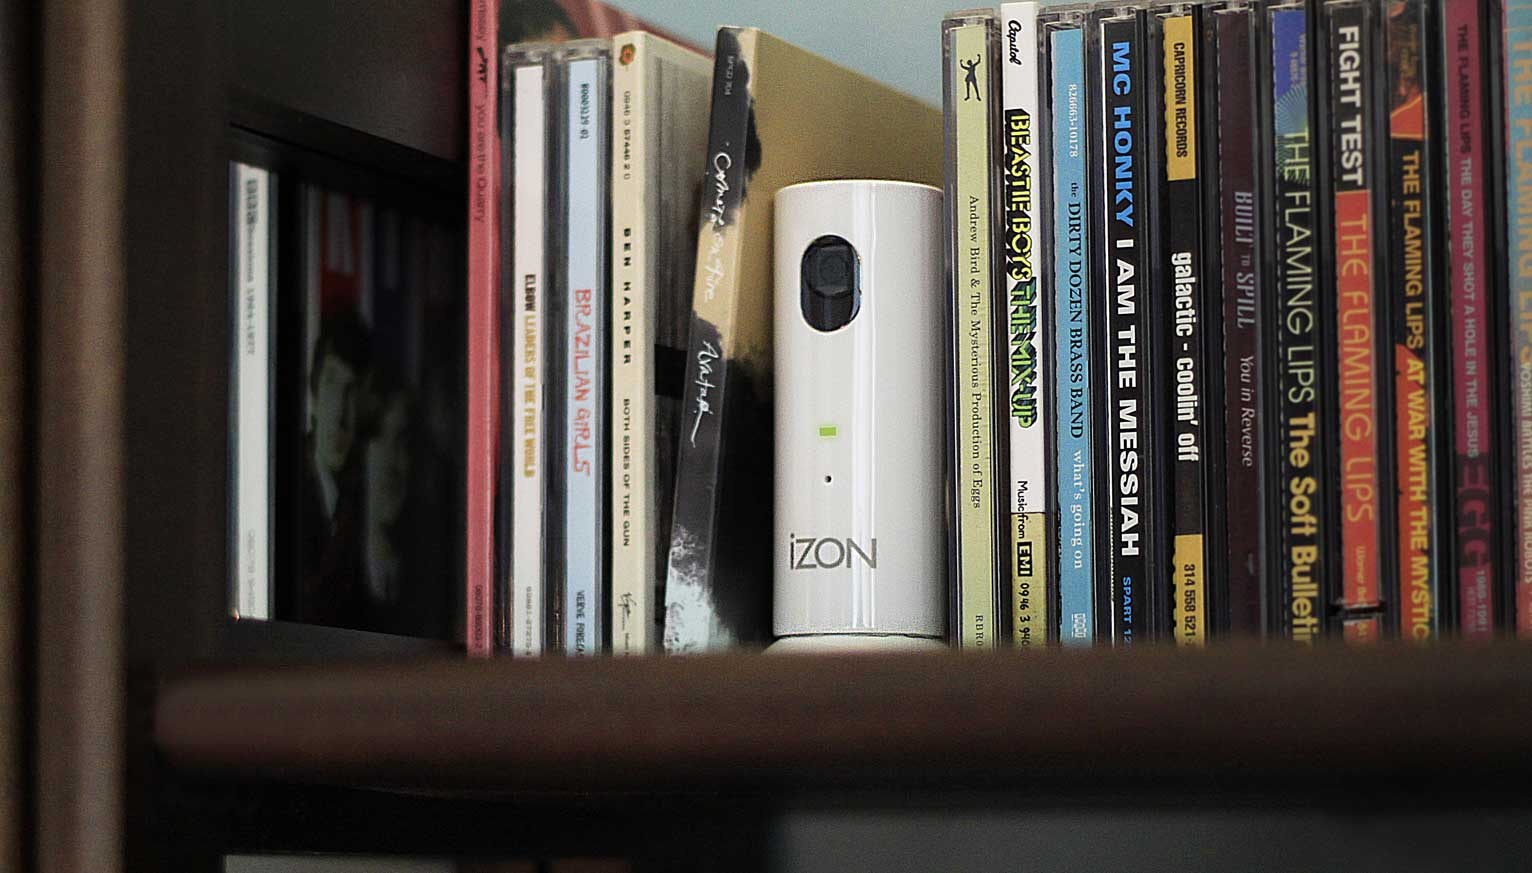 Stem iZON 2.0 WiFi Video Monitor for iPhone, iPad and iPod